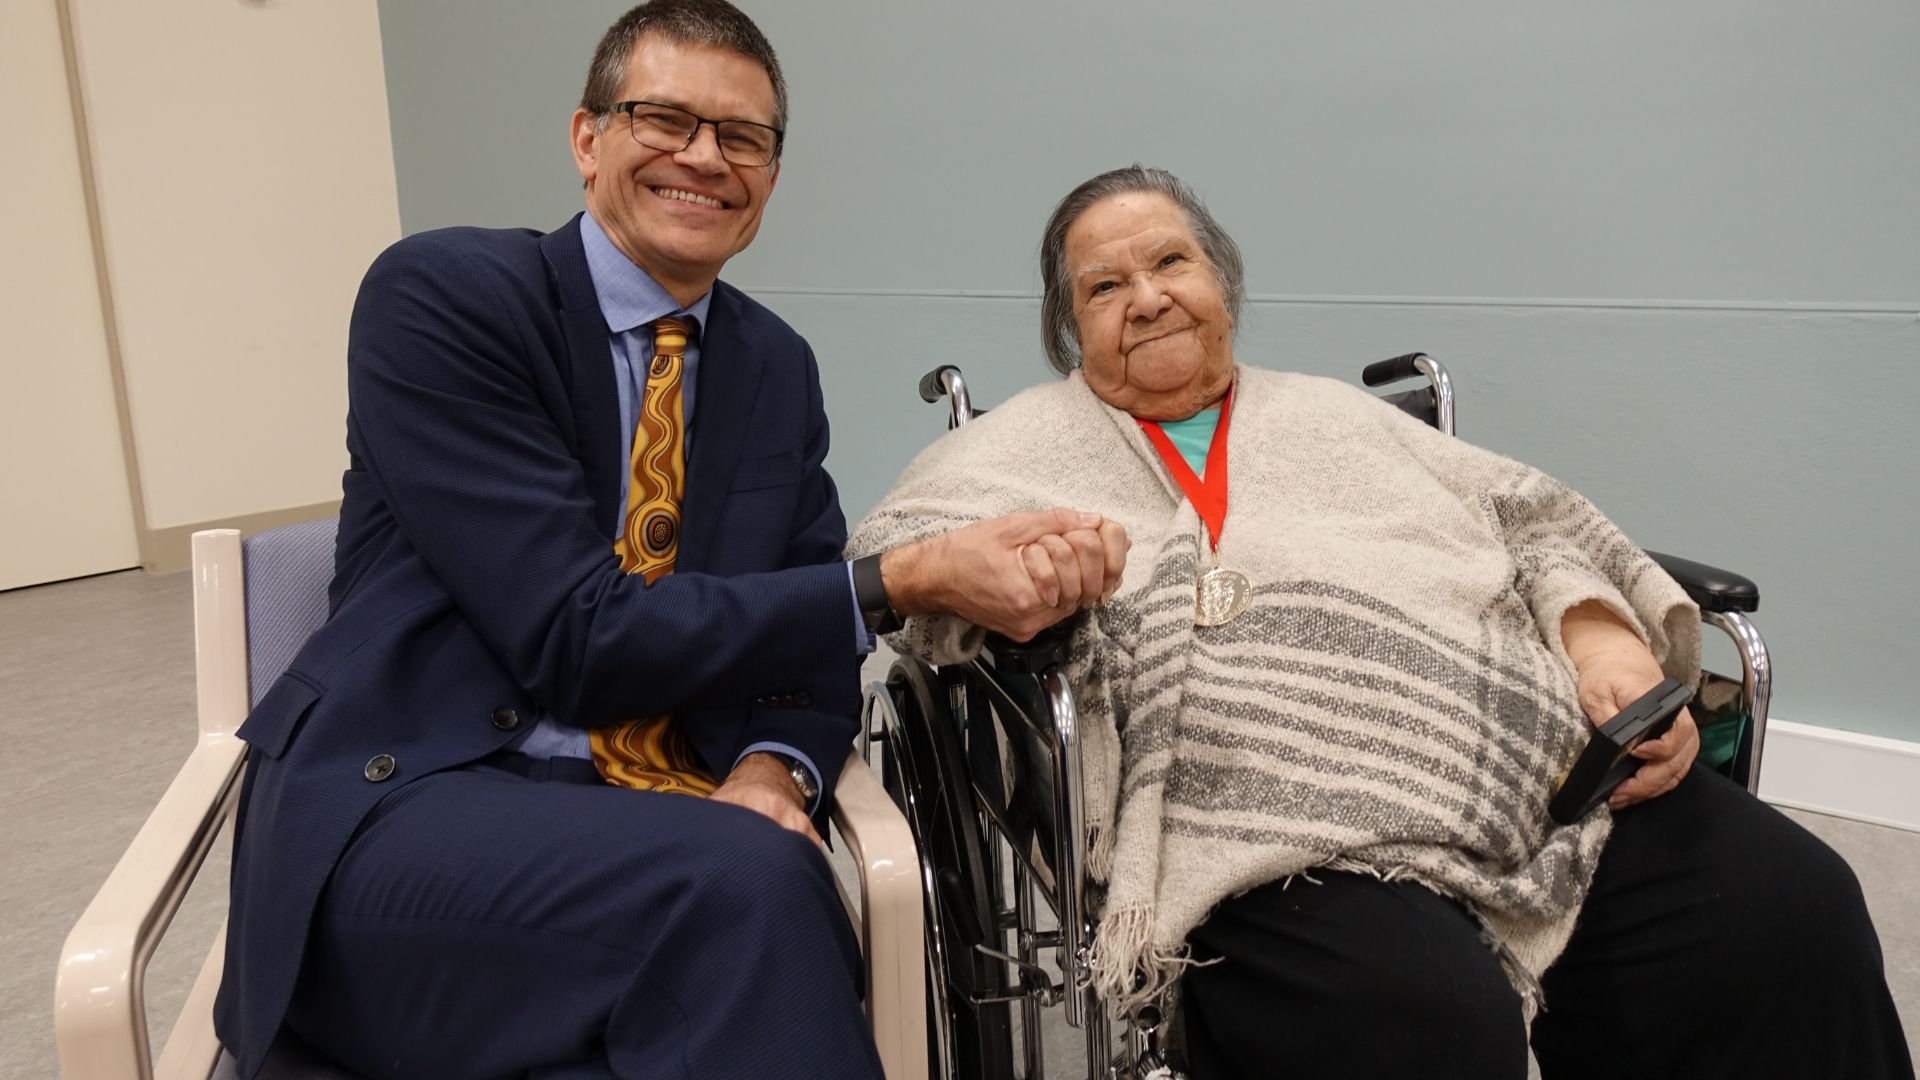 Aunty Flo Grant awarded Order of the Companion of the University